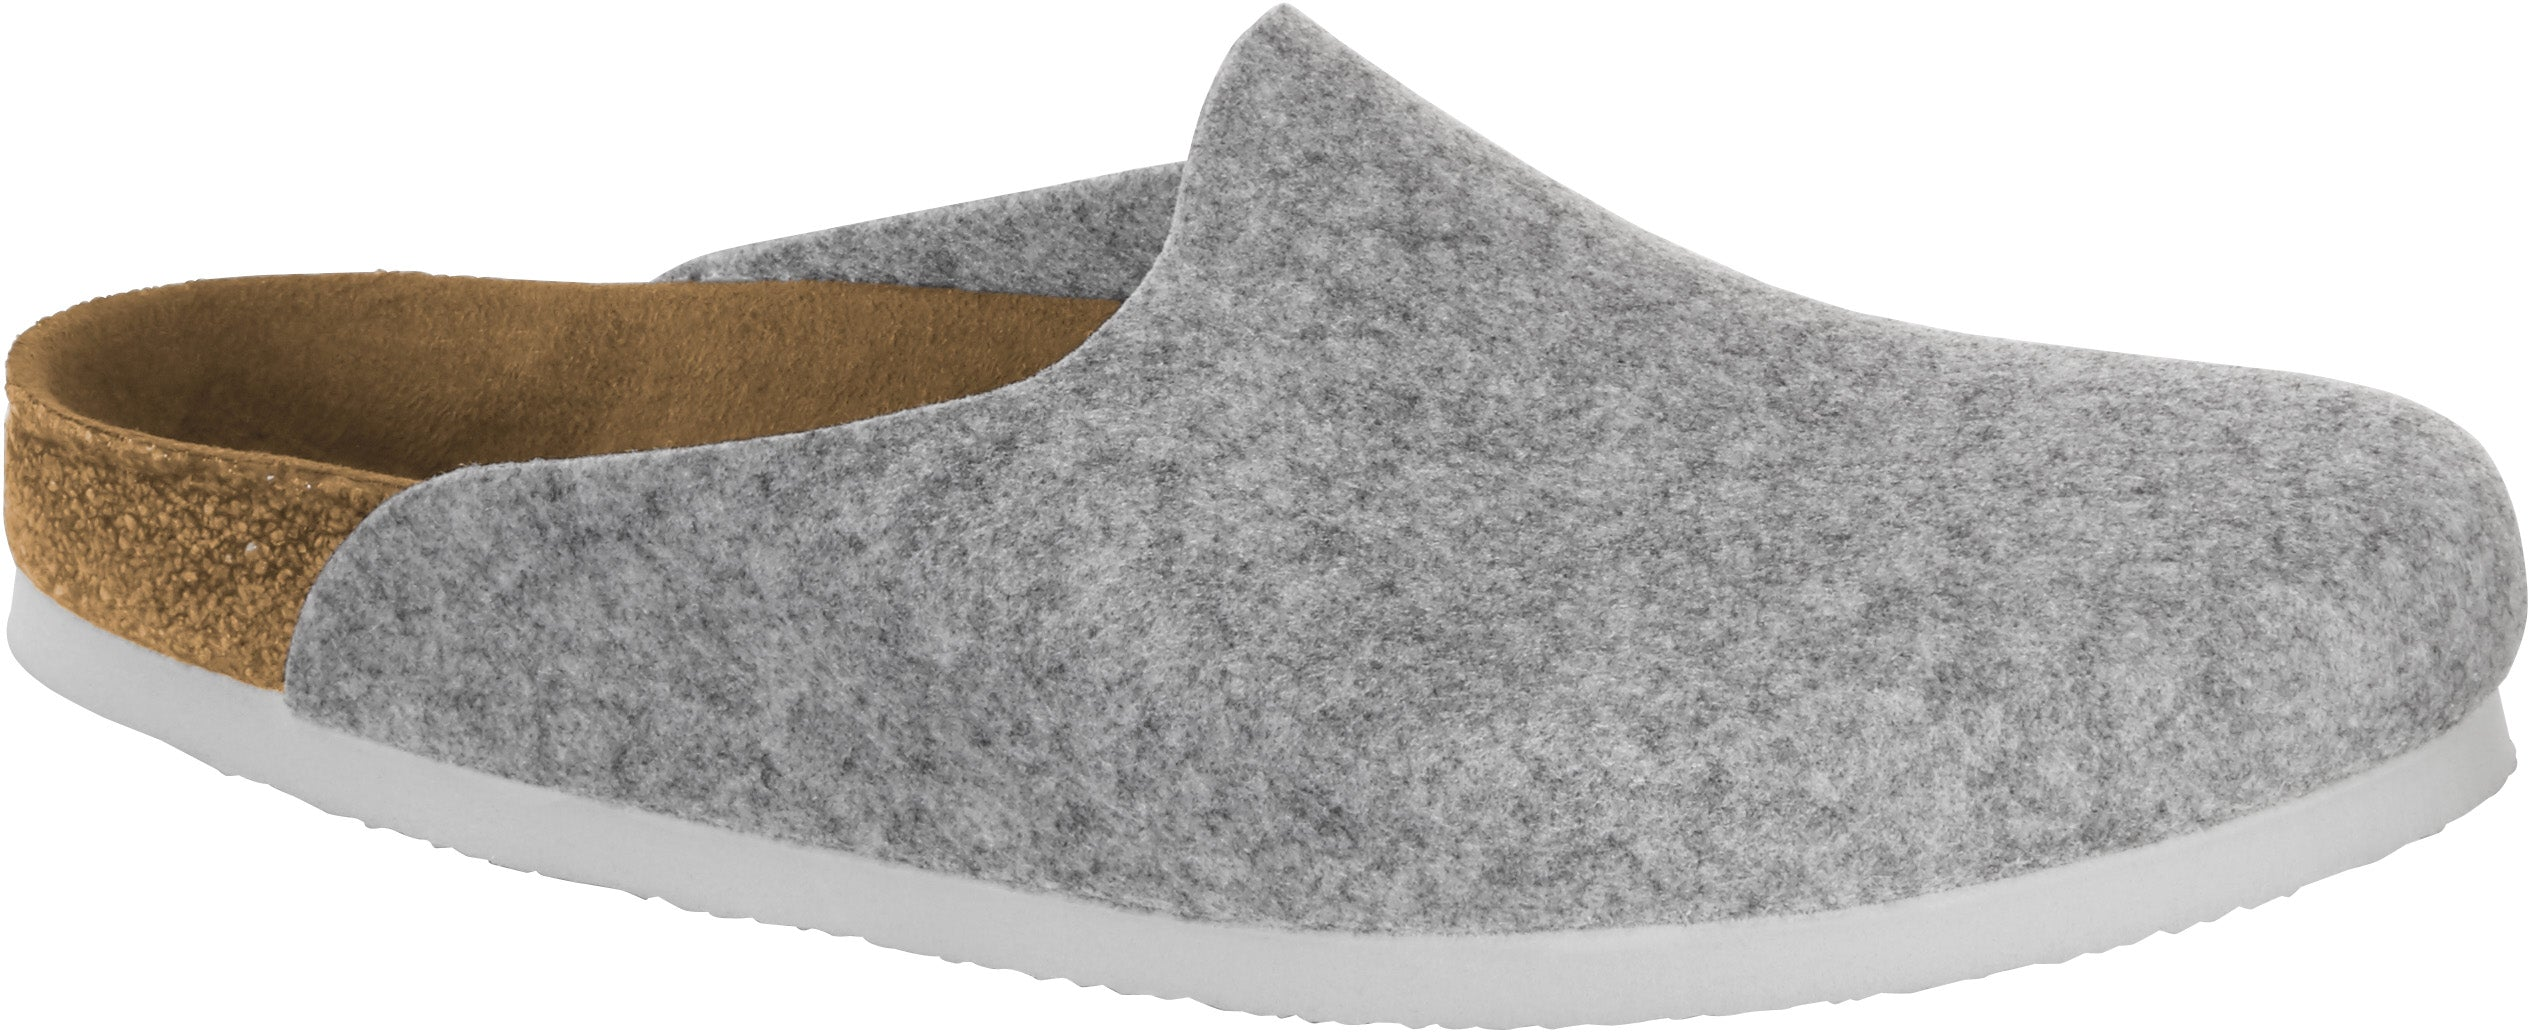 Amsterdam Vegan - Light Grey Felt